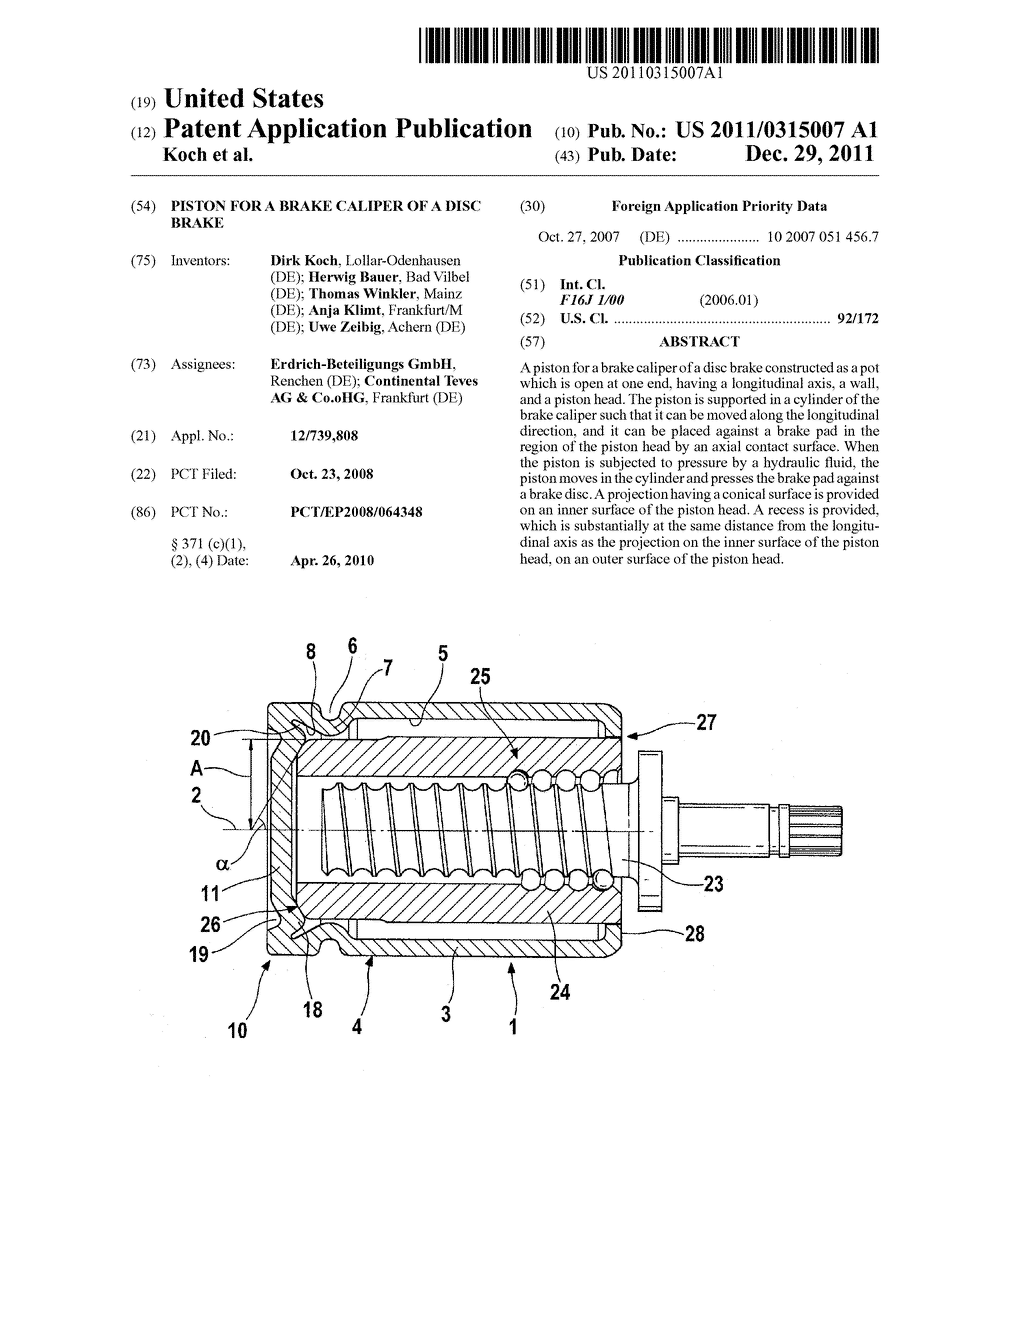 PISTON FOR A BRAKE CALIPER OF A DISC BRAKE - diagram, schematic, and image 01